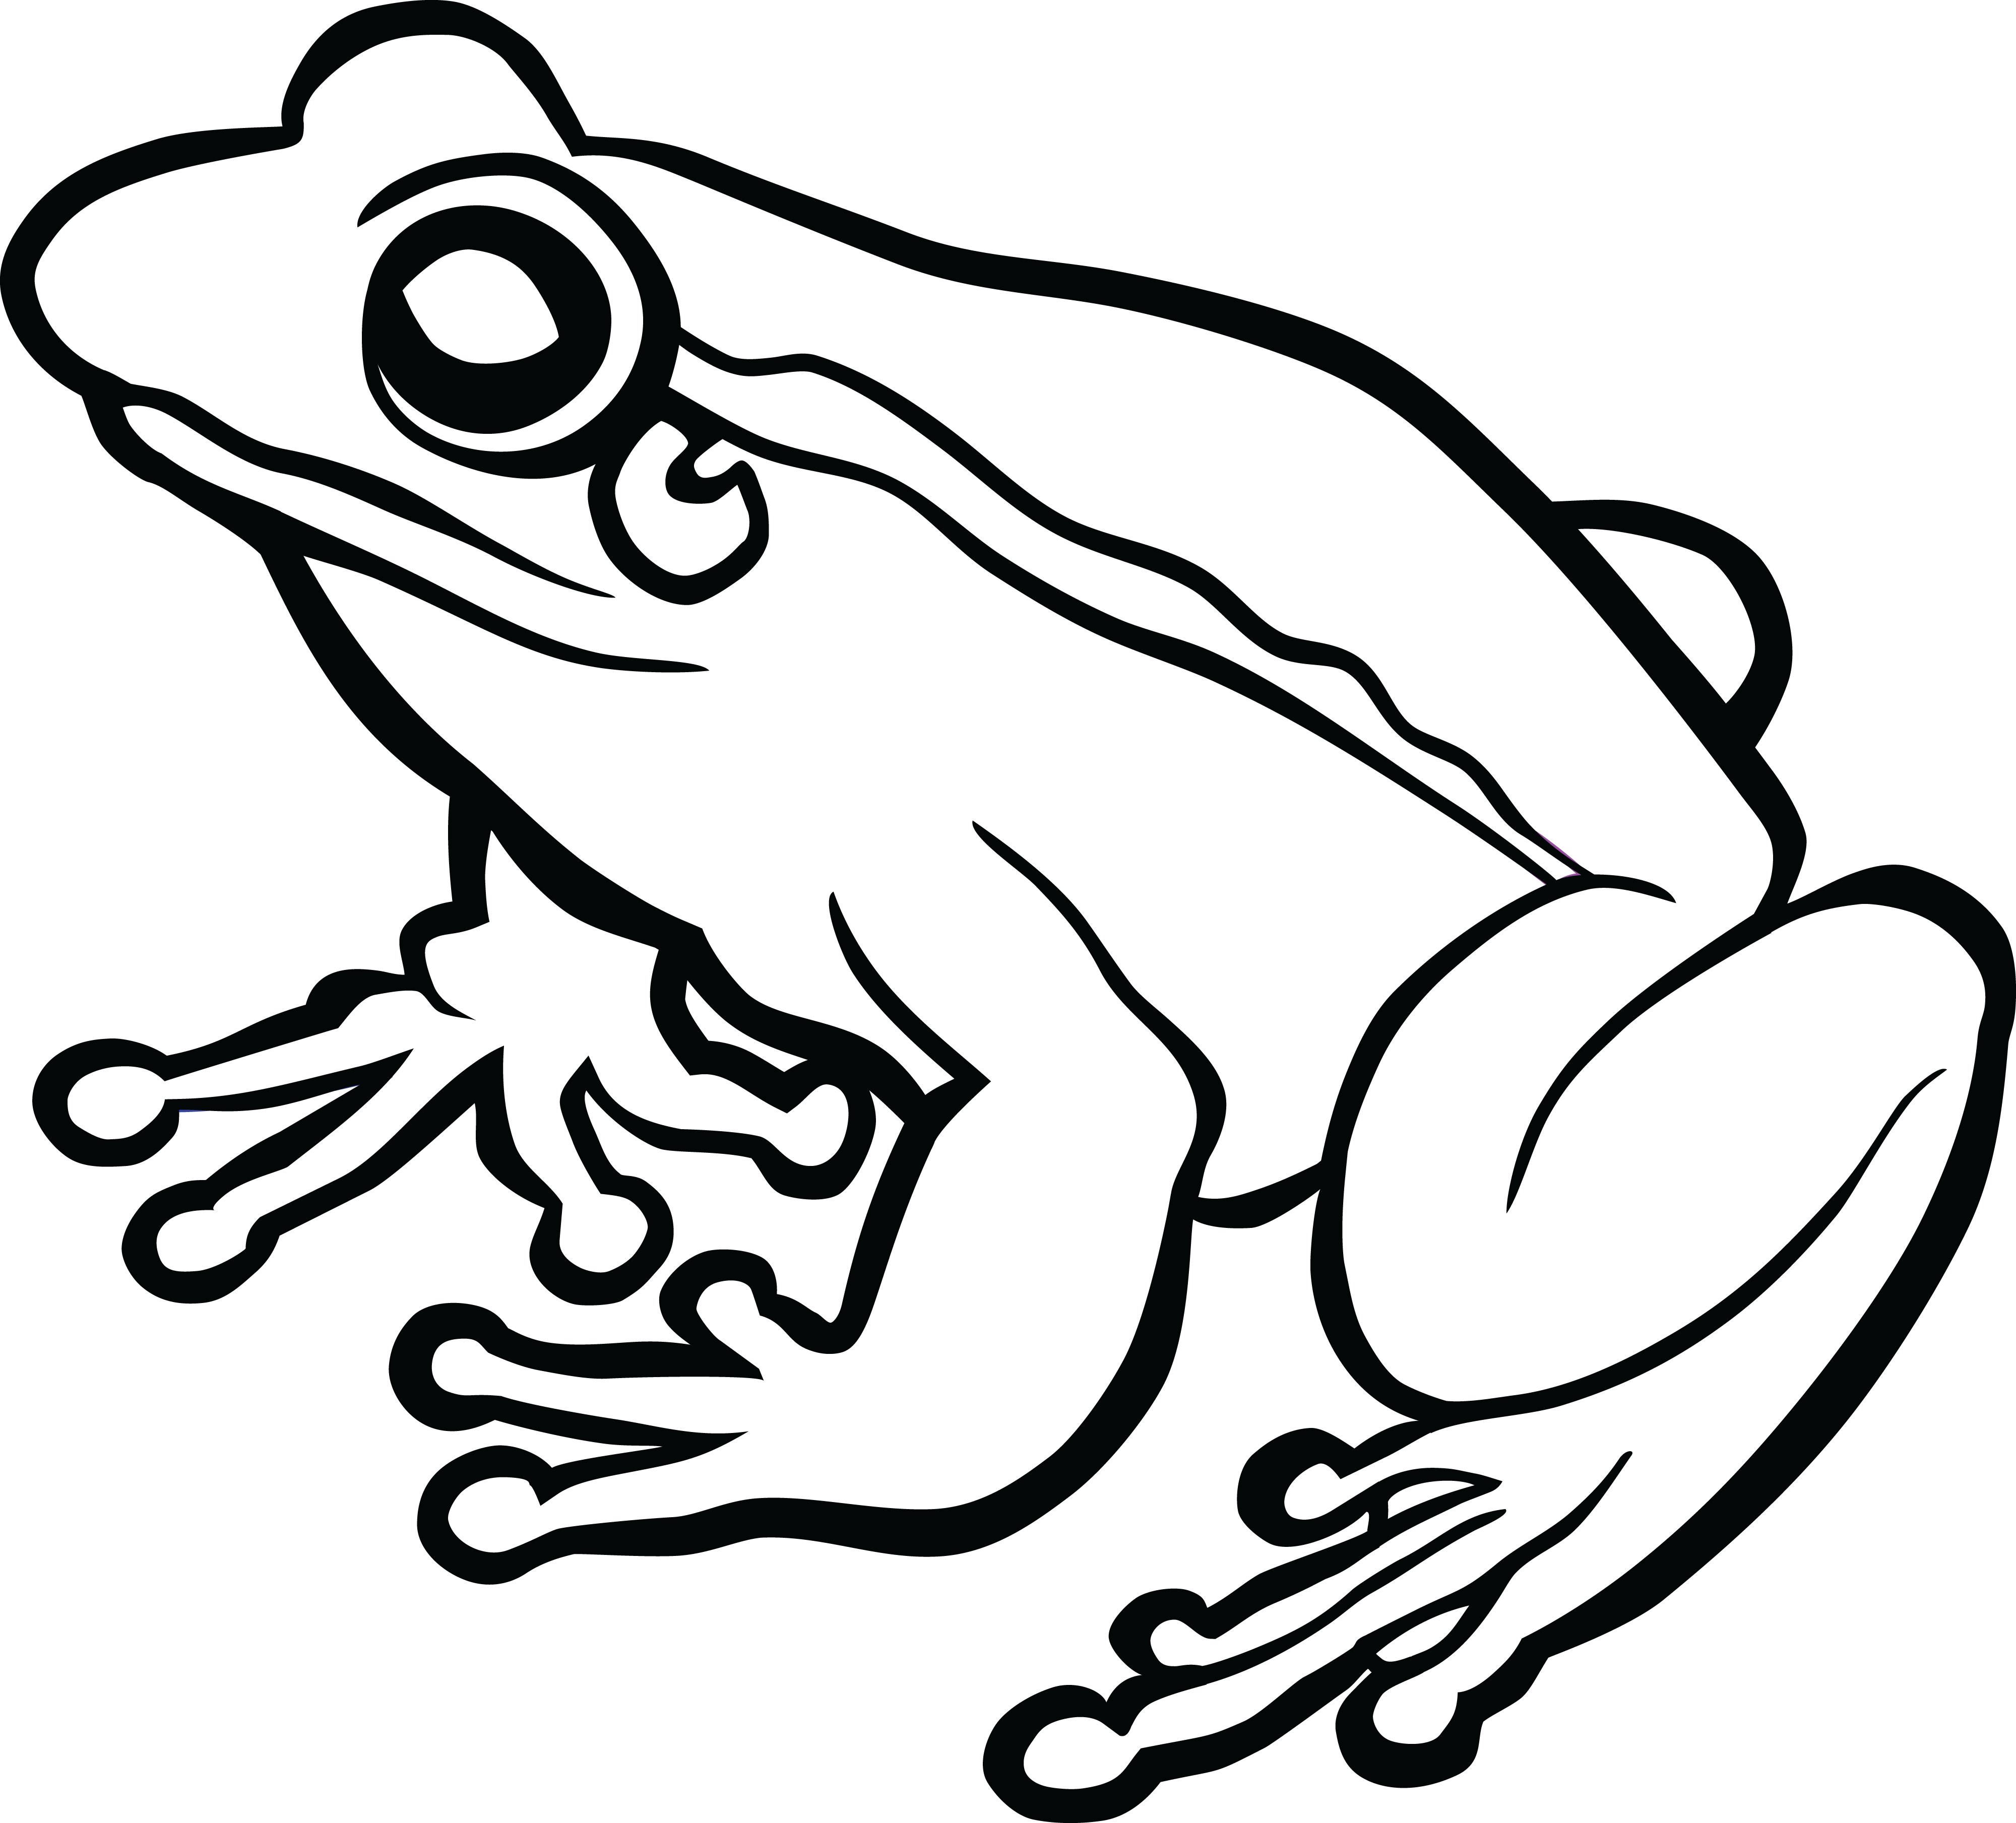 Frog and rose clipart black and white svg Toad PNG Black And White Transparent Toad Black And White.PNG Images ... svg